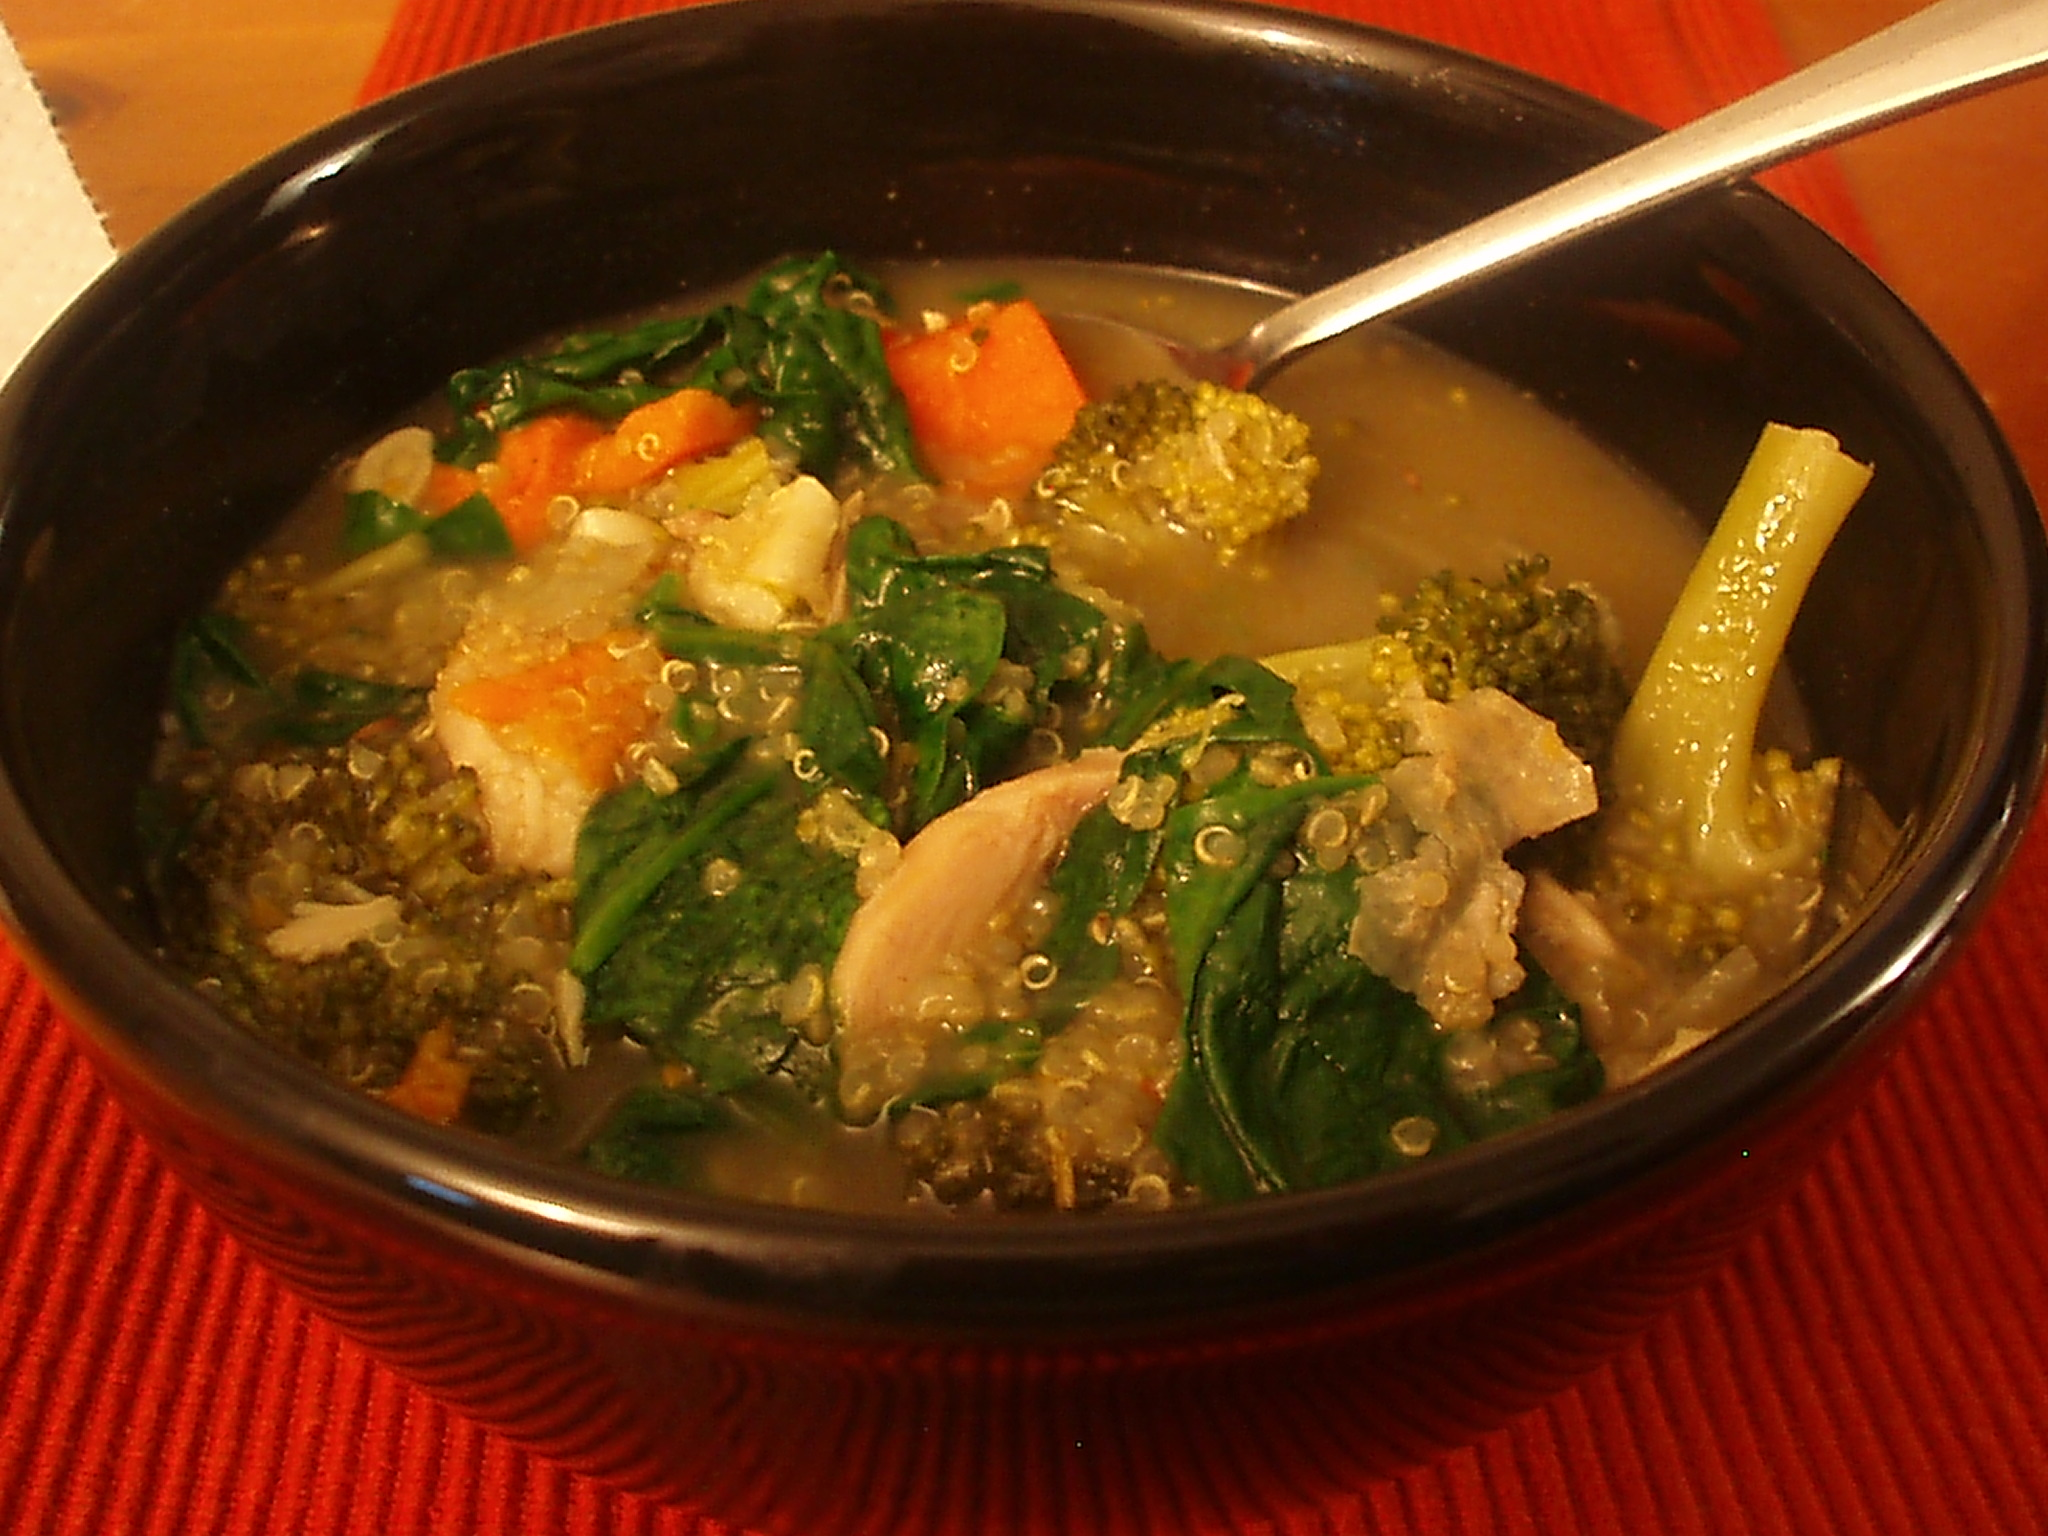 spinach soup with broccoli and quinoa